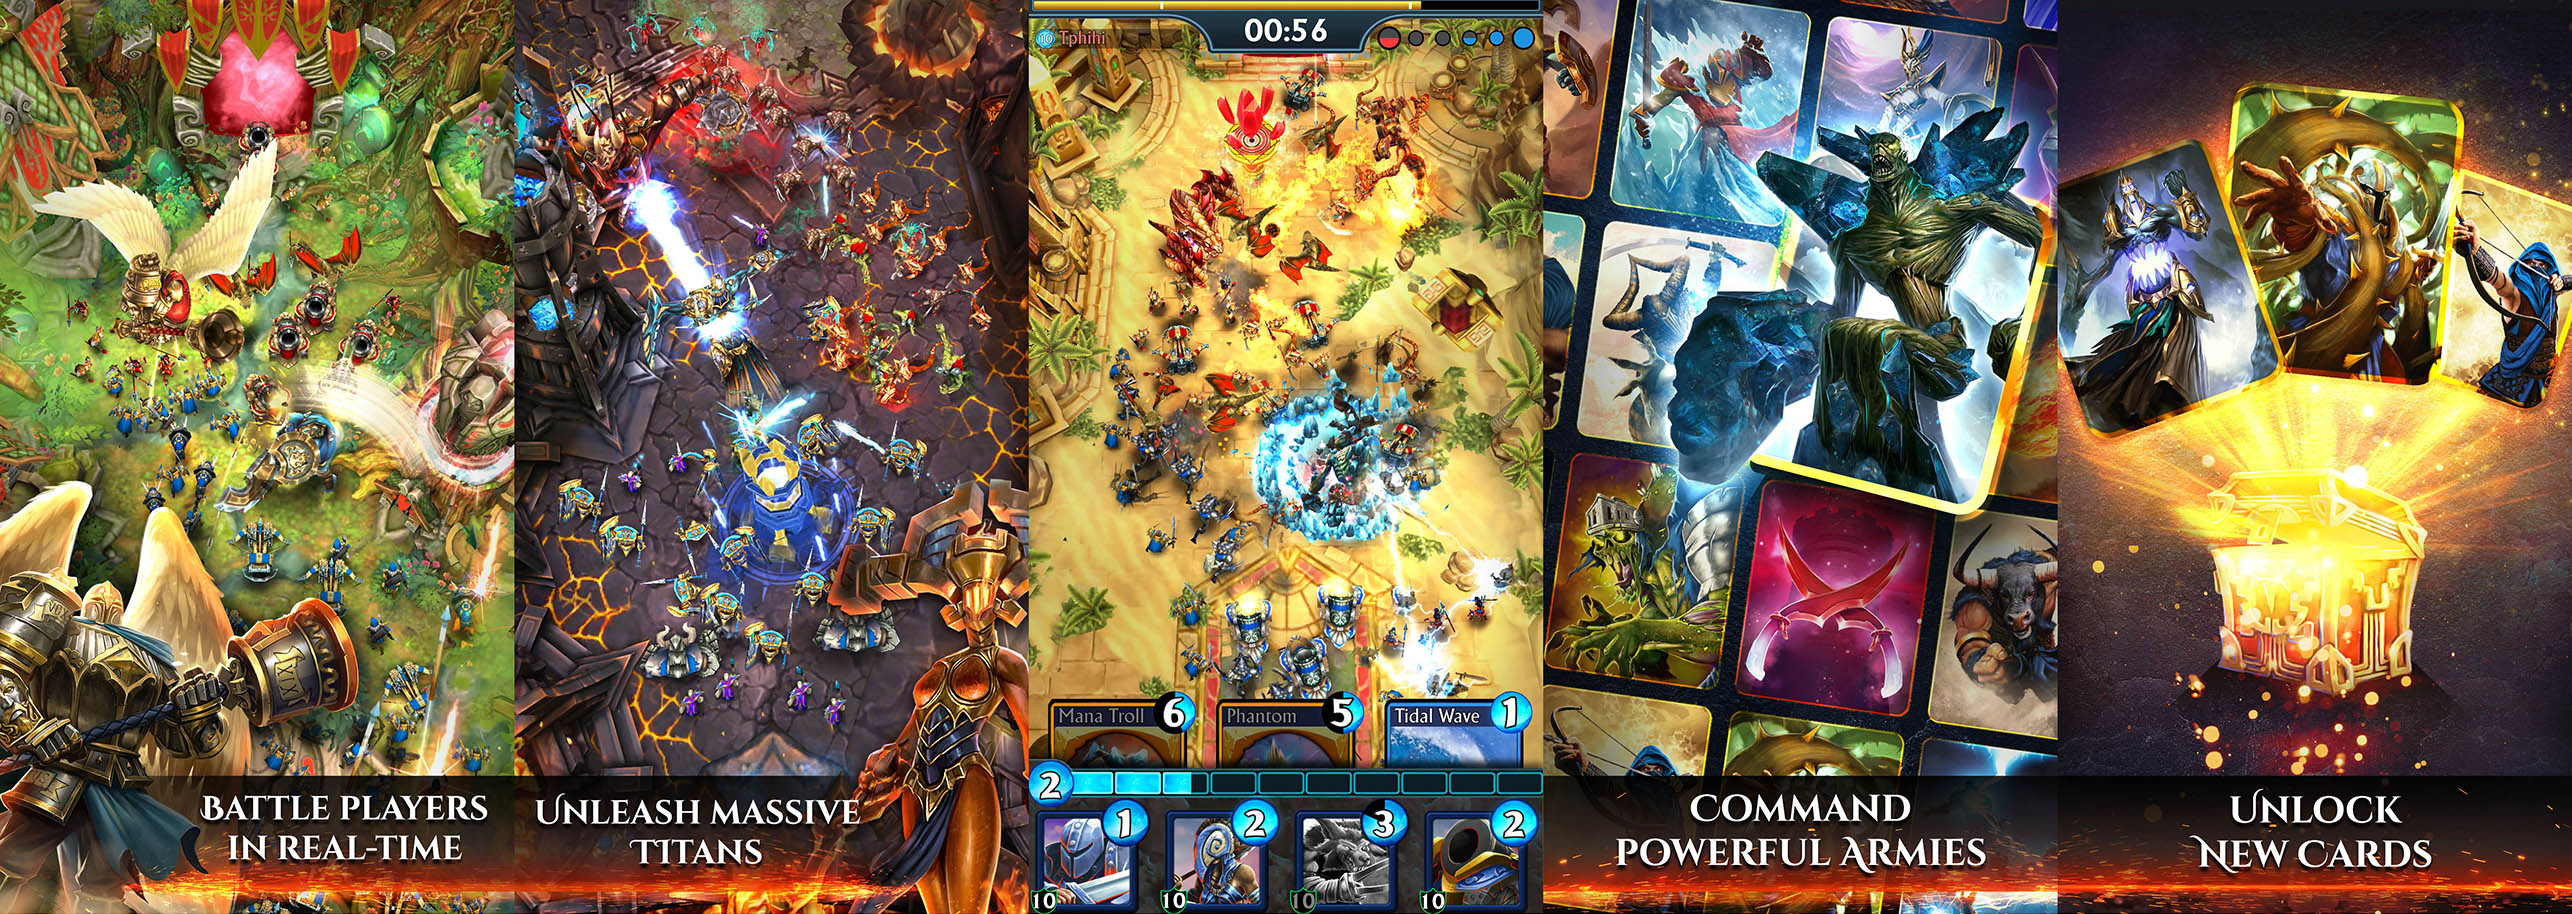 App Store screenshots created for the mobile game Siege: Titan Wars.